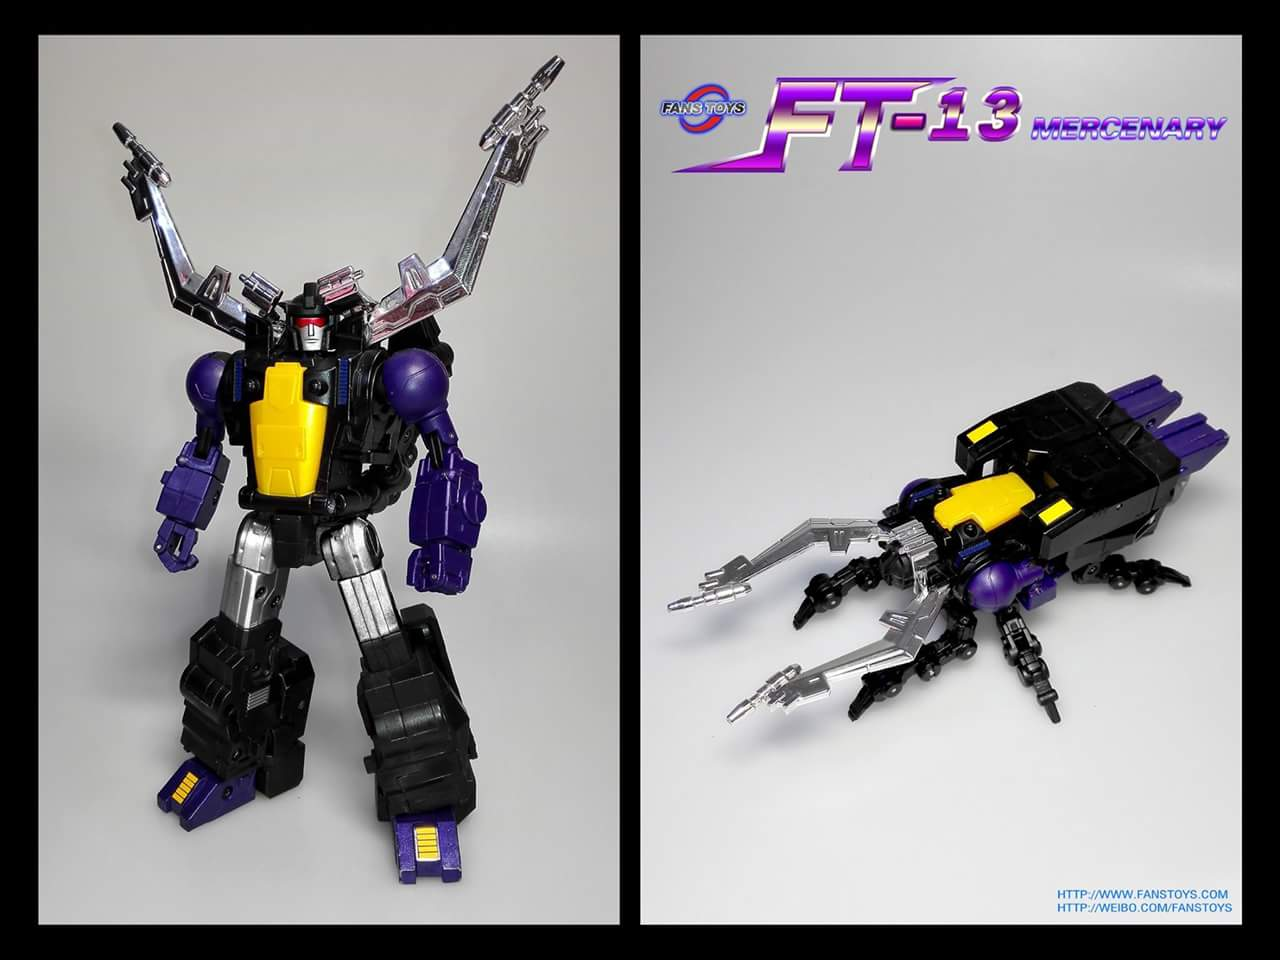 [Fanstoys] Produit Tiers - Jouet FT-12 Grenadier / FT-13 Mercenary / FT-14 Forager - aka Insecticons - Page 2 Ermp46DI